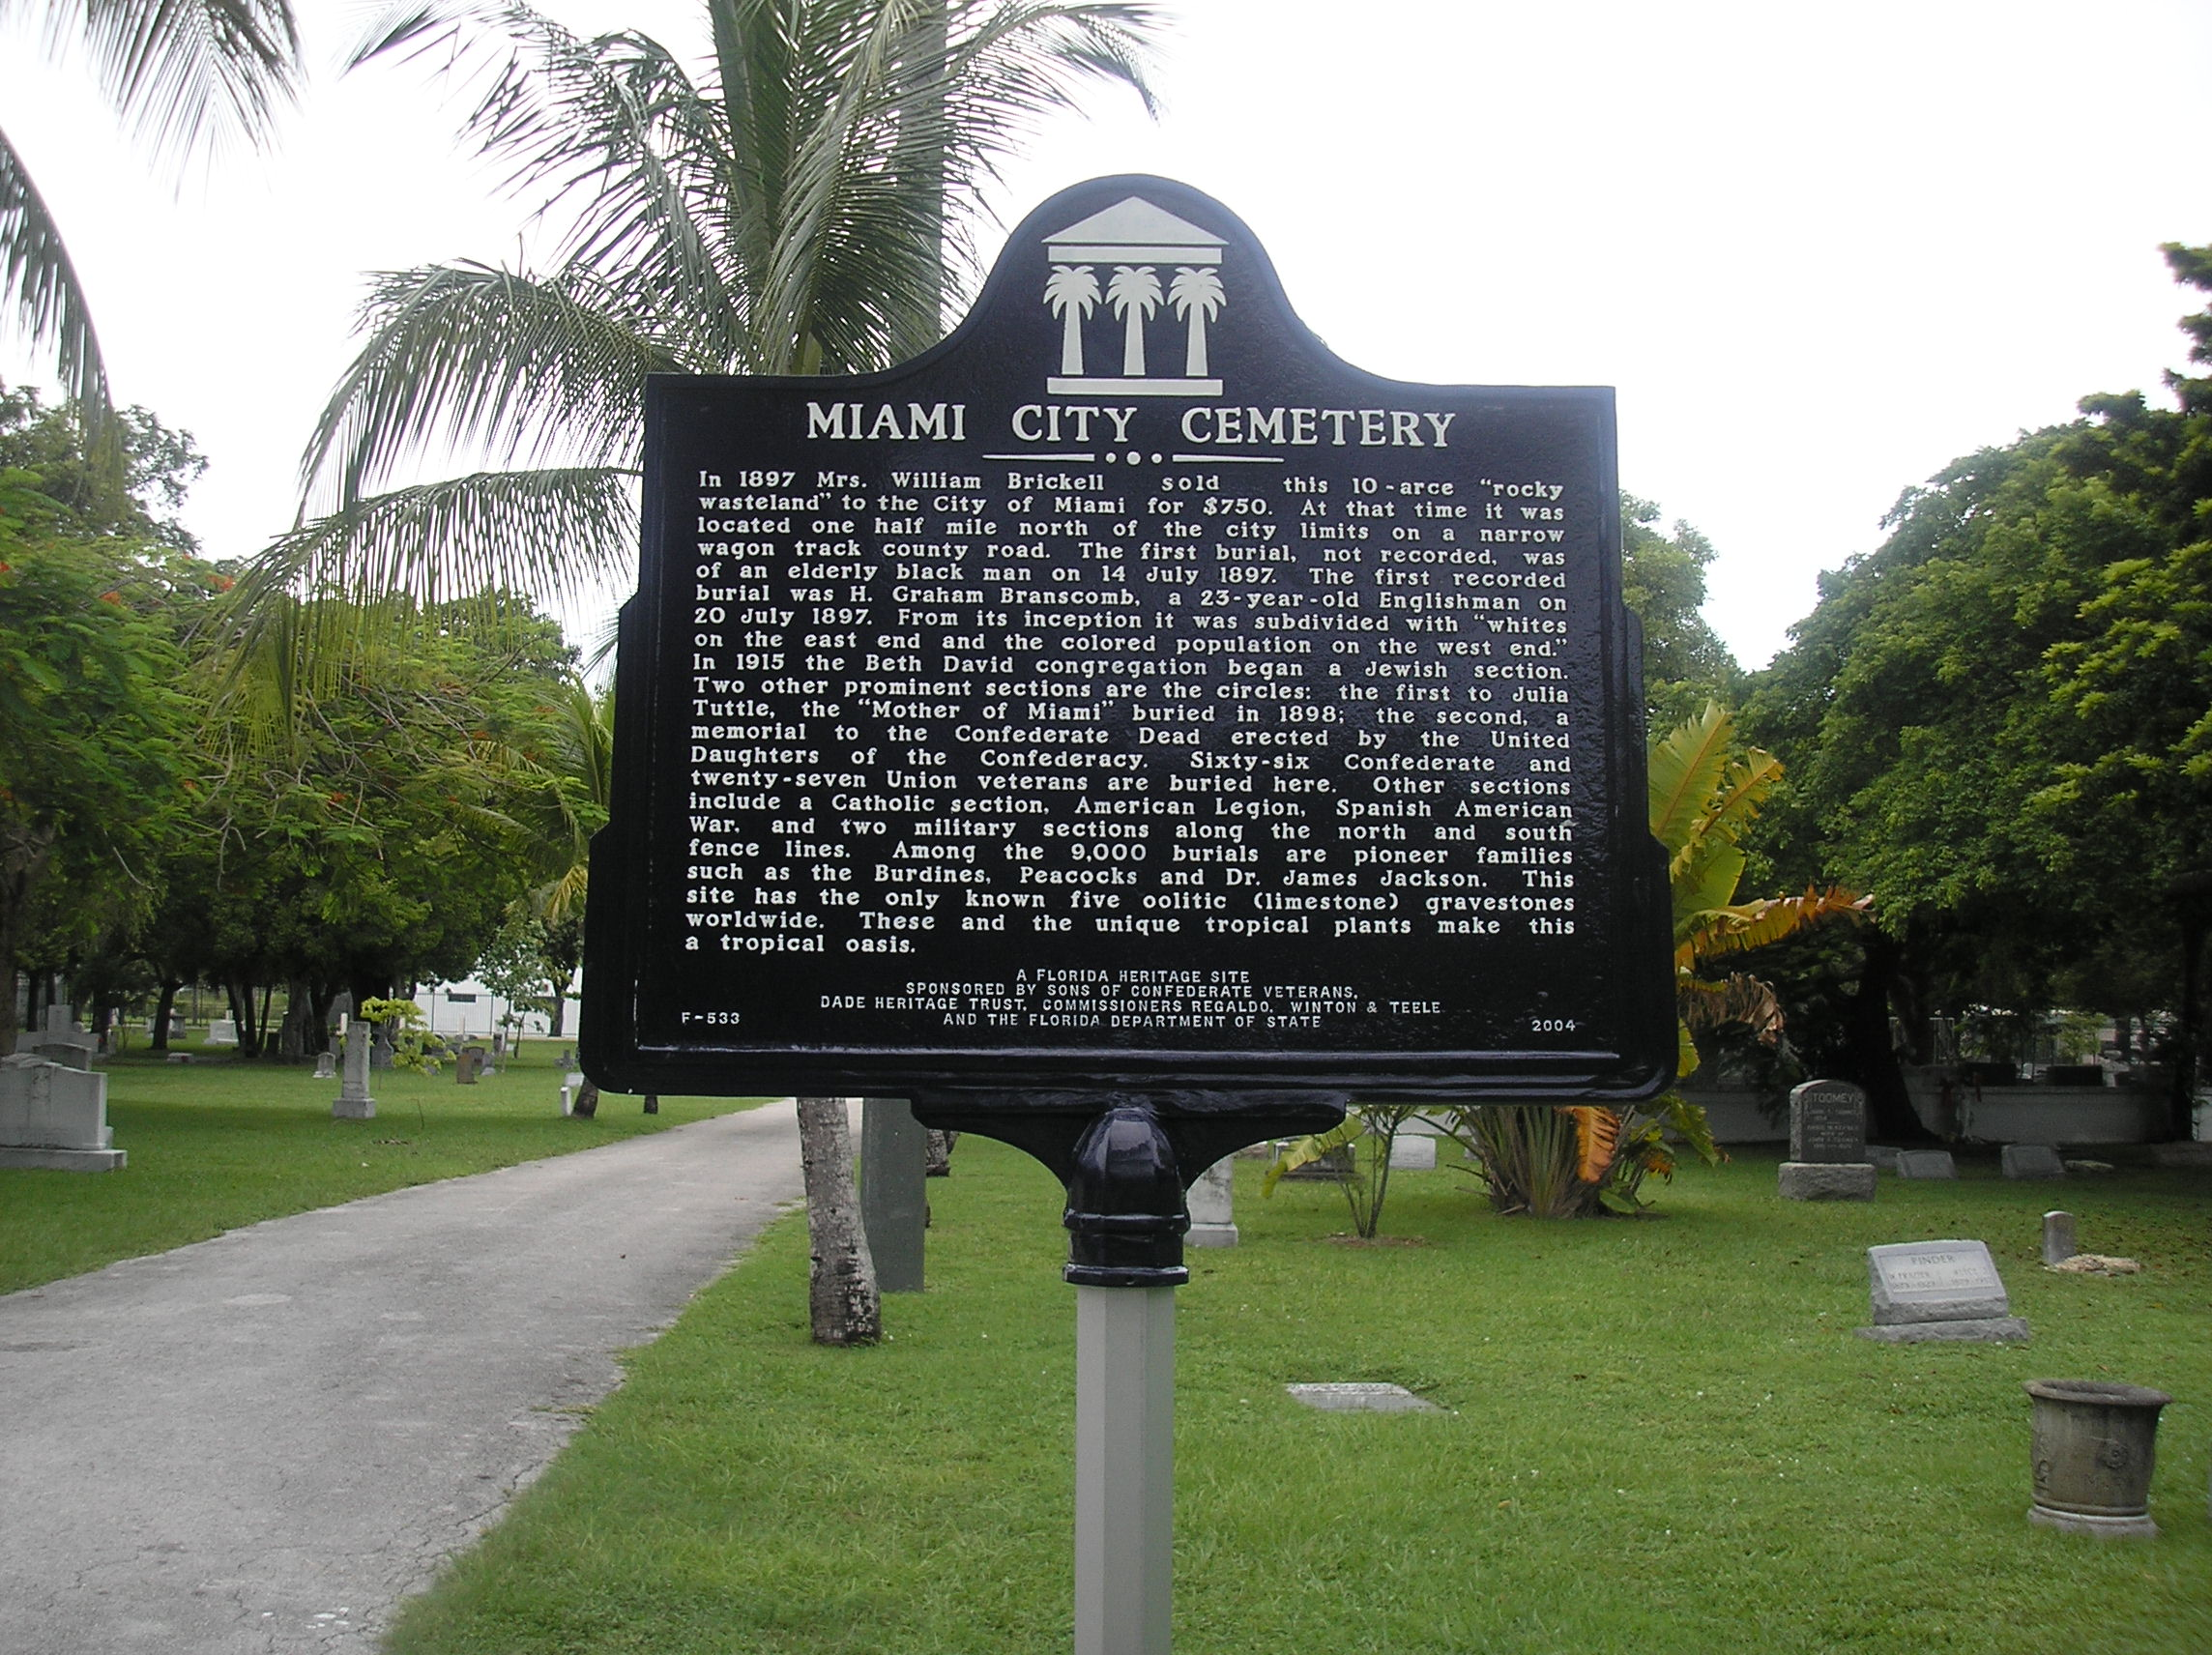 A historic marker for Miami City Cemetery, placed in 2013, notes important groups and individuals associated with the cemetery.